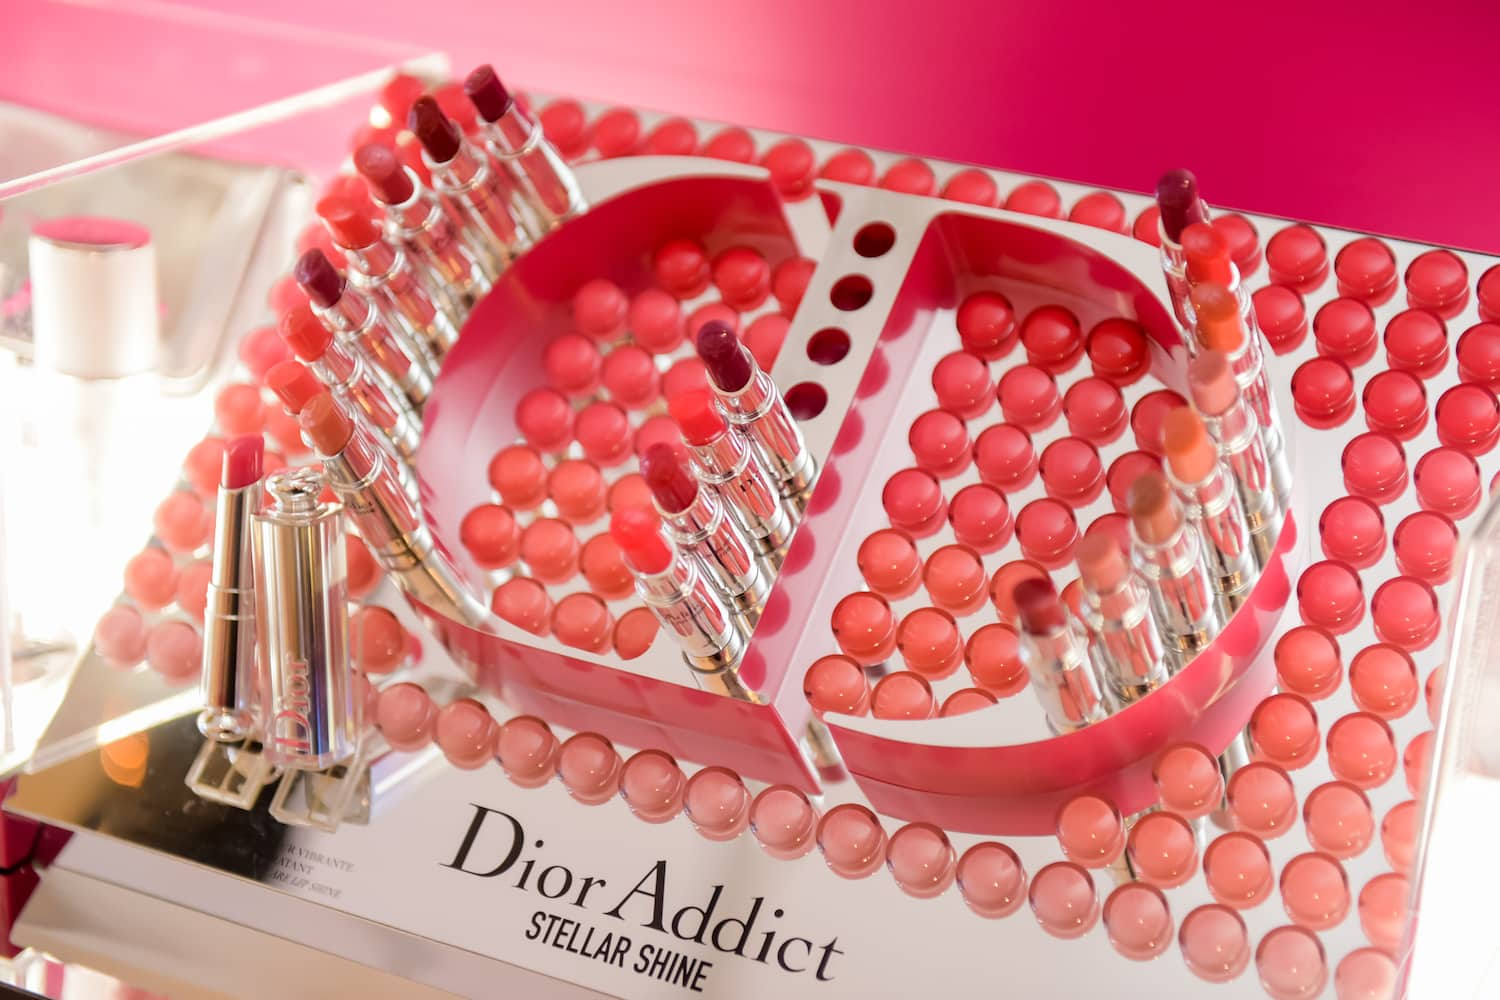 Dior Addict Stellar Shine pop up ion